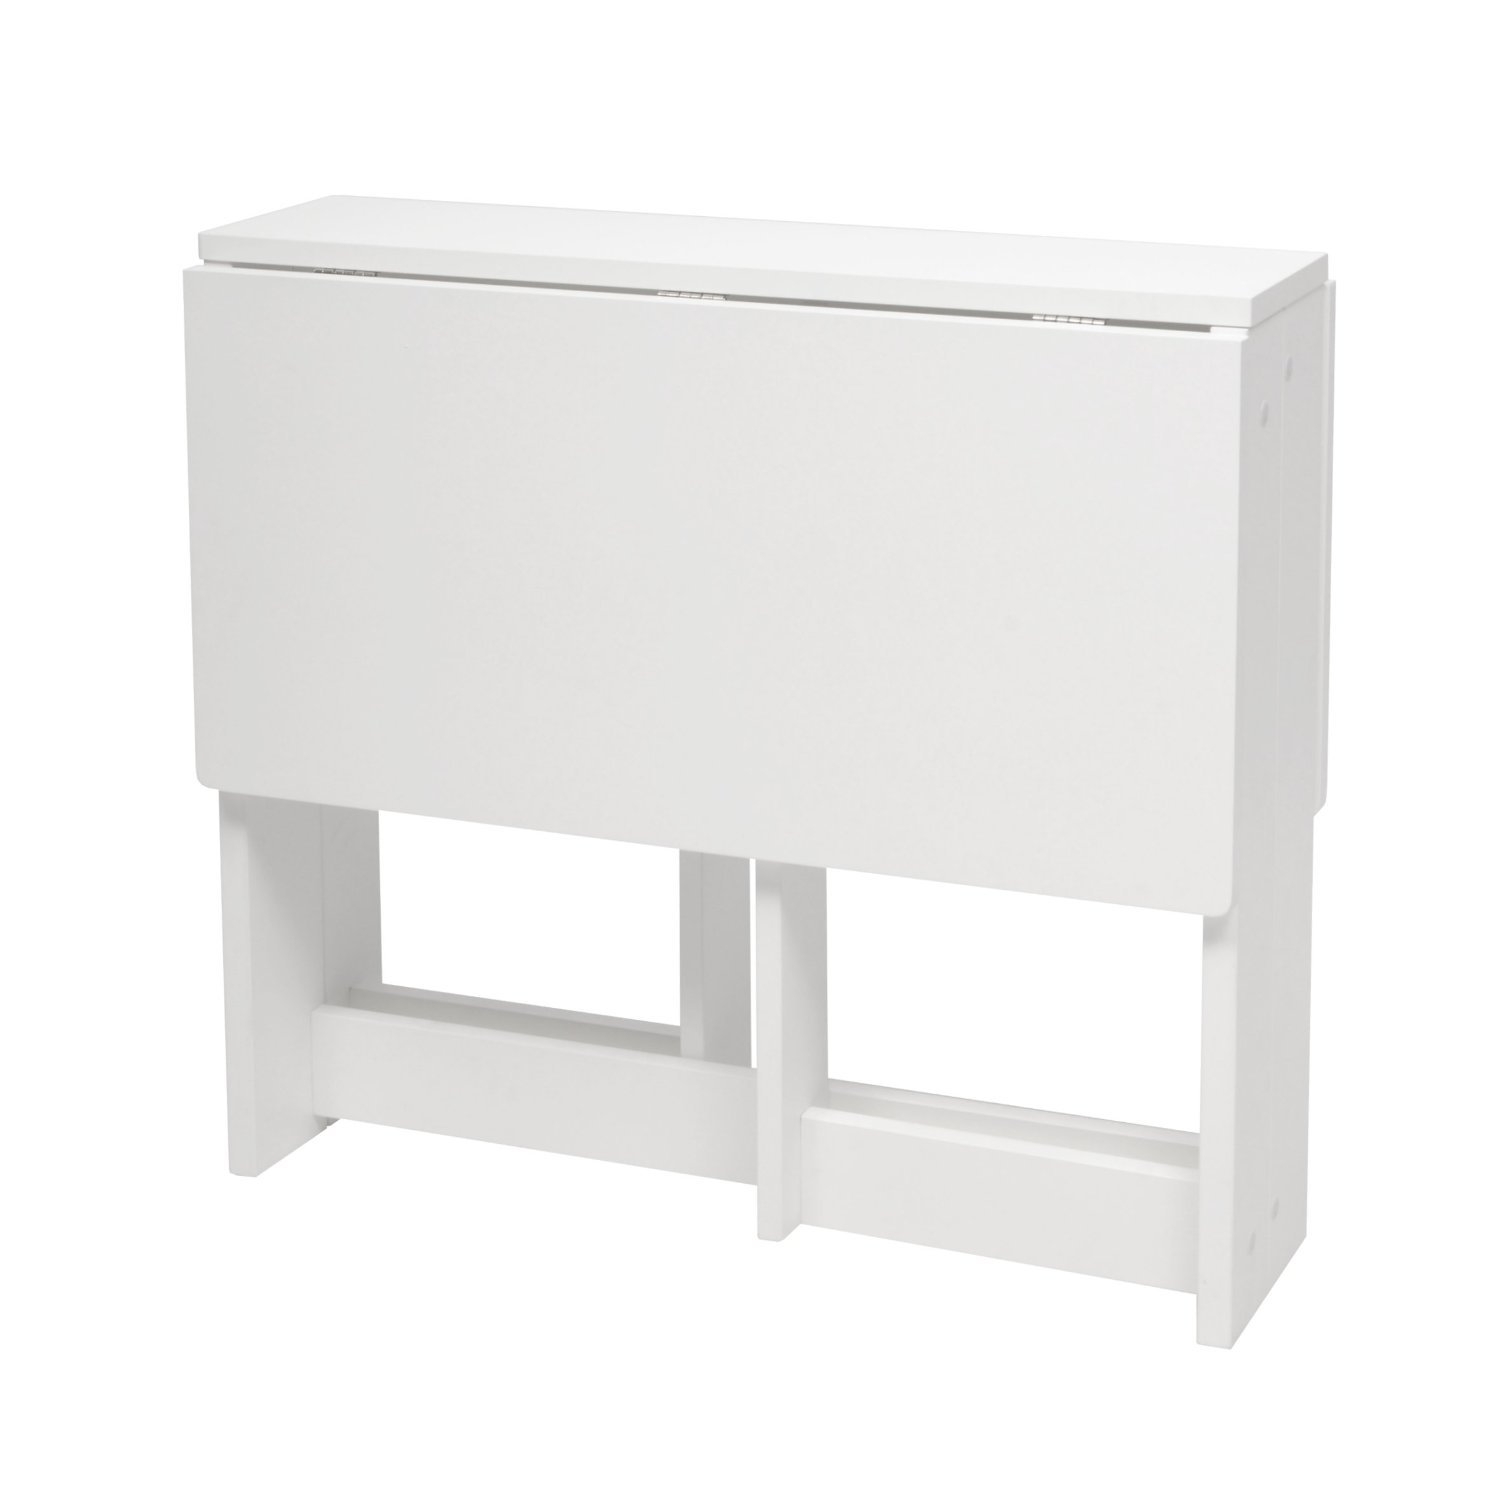 Table pliante cuisine - Table de cuisine pliante ikea ...